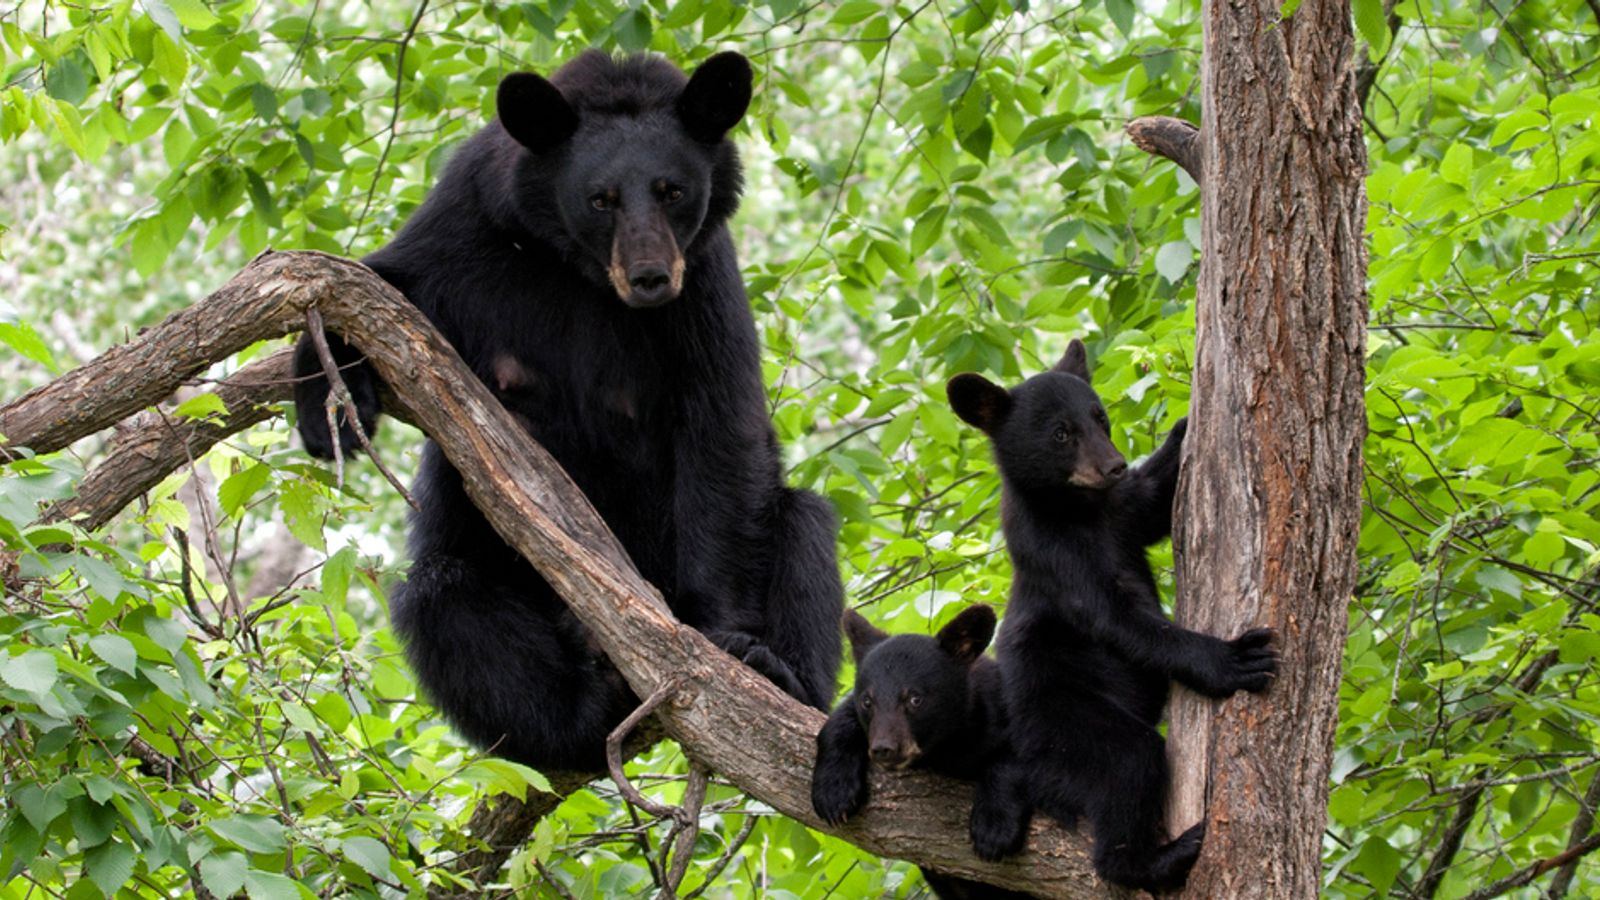 Human remains found in two bears following fatal attack on woman